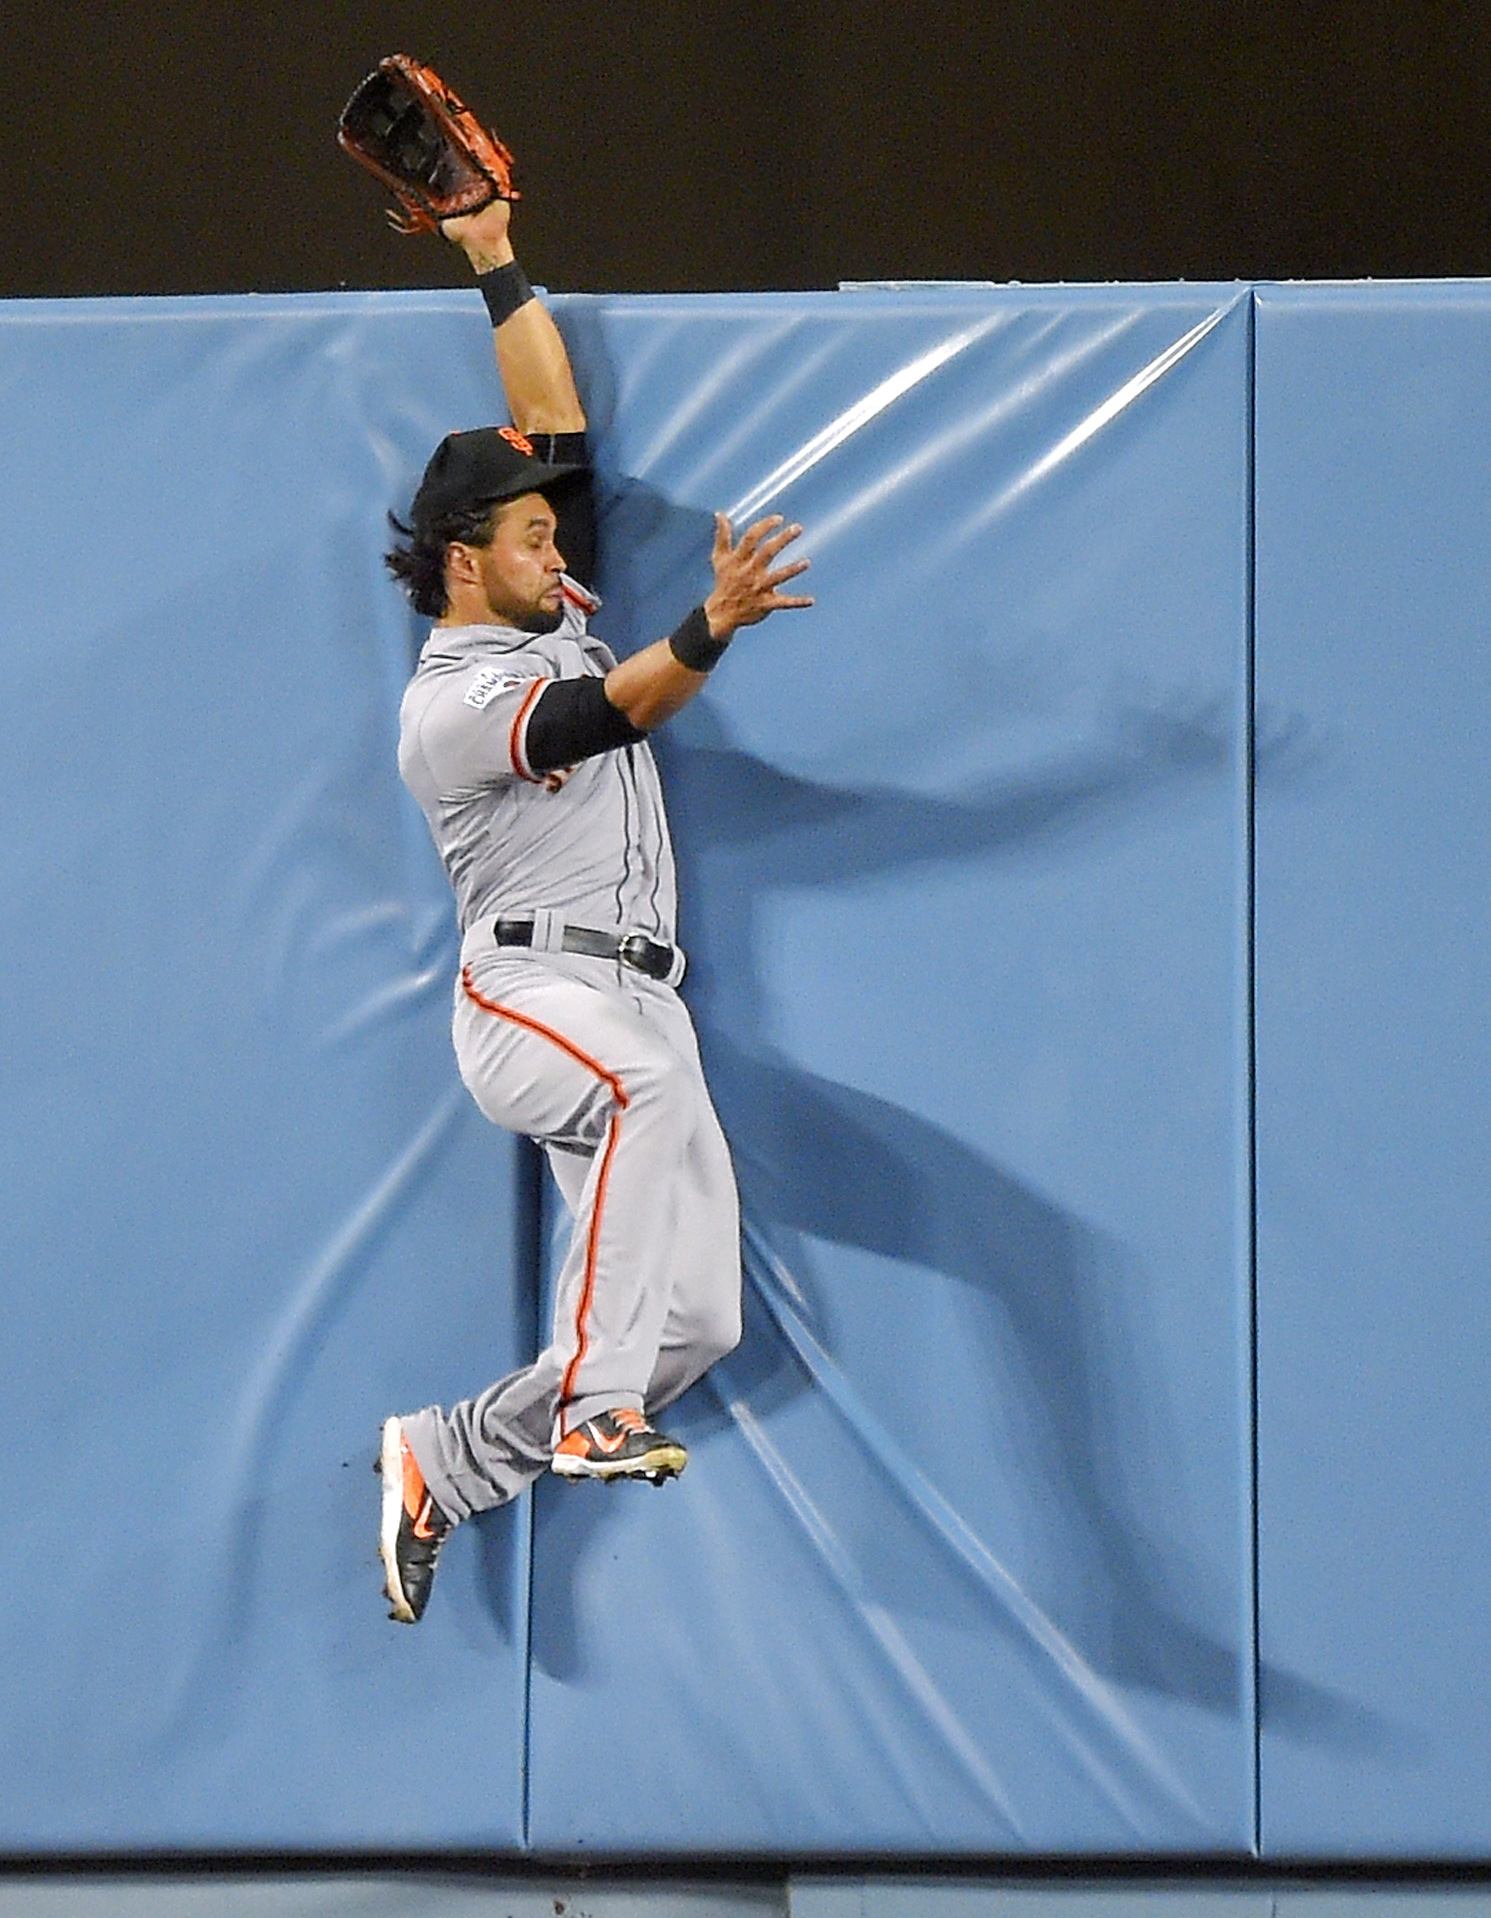 San Francisco Giants center fielder Angel Pagan can't reach a ball hit for a three-run home run by Los Angeles Dodgers' Justin Turner during the eighth inning of a baseball game, Monday, April 27, 2015, in Los Angeles. (AP Photo/Mark J. Terrill)